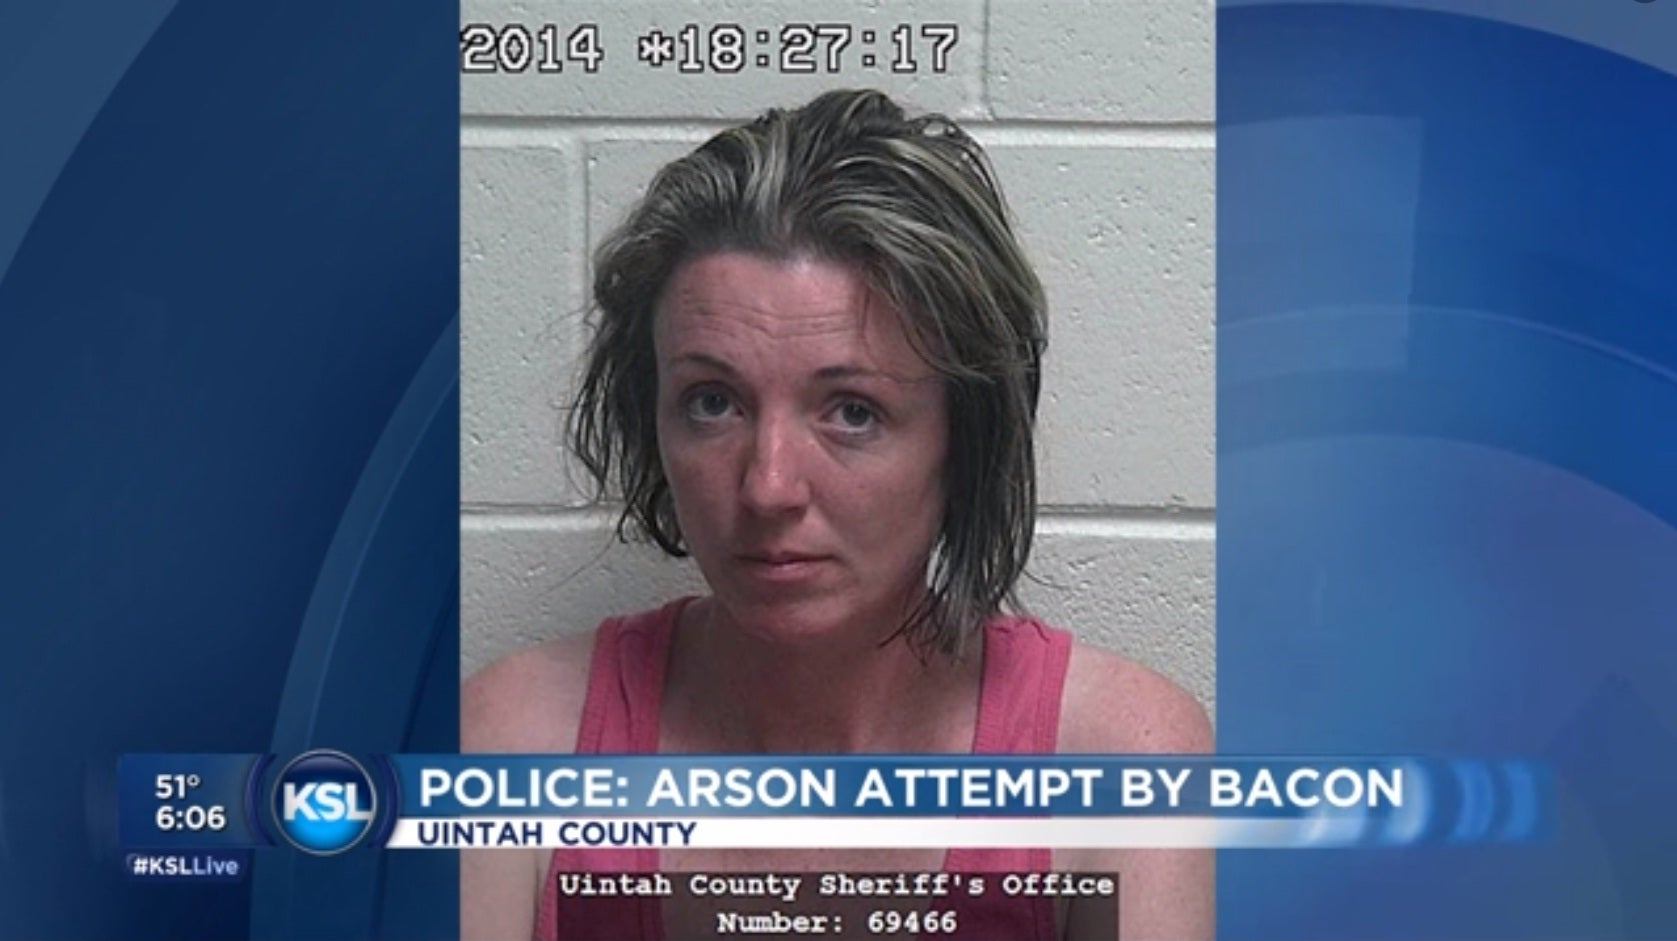 Woman named 'Crispi' uses bacon in arson attempt | The IndependentShape